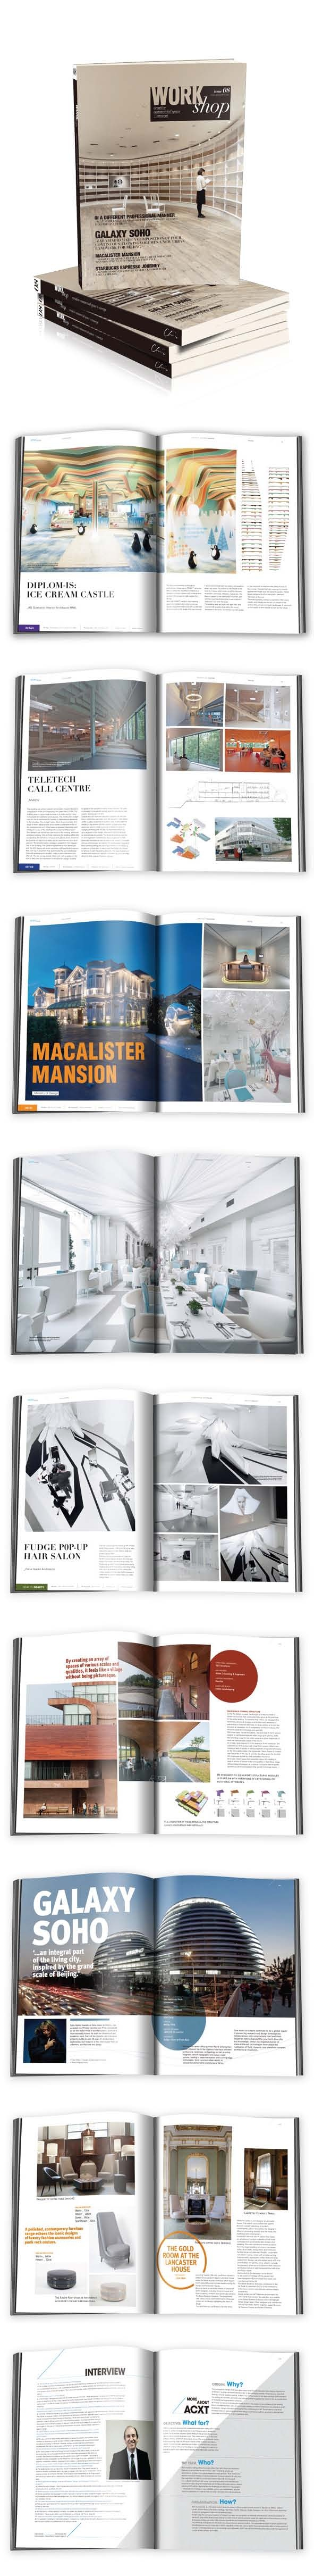 New publication in Workshop 08 : Ice Cream Castle Norway. http://choisgallery.com/Magazine/look/id/578